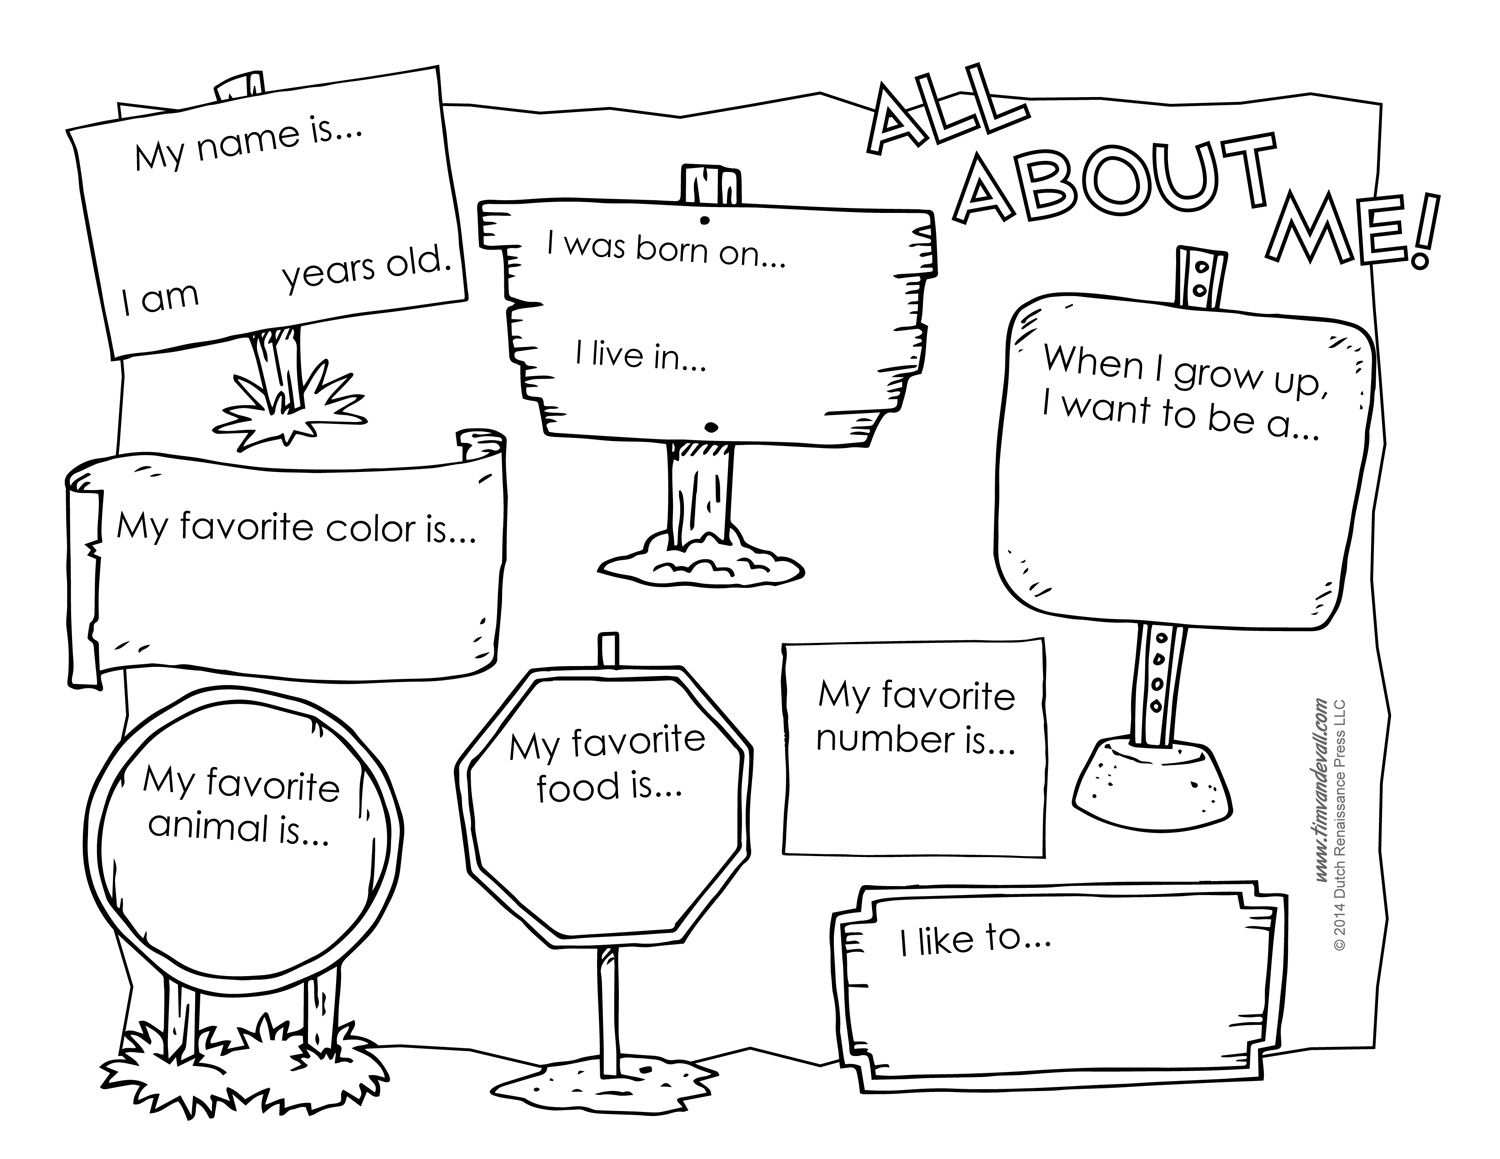 All About Me Coloring Pages To And Print For Free | Beginning Of - Free Printable All About Me Poster